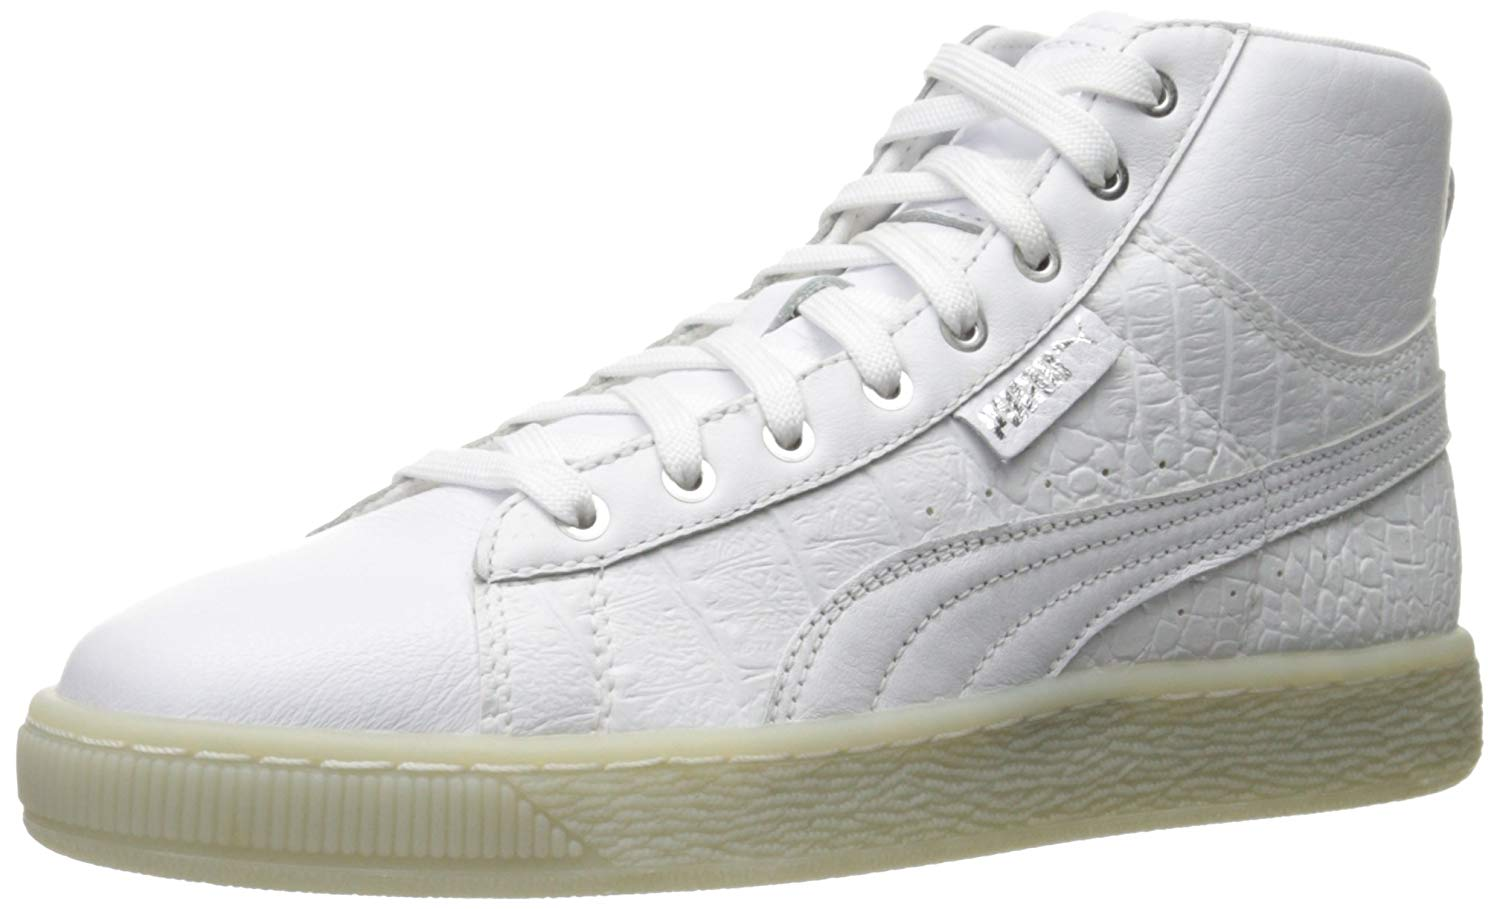 9d71ae4cac1d PUMA Women s Basket Mid Ali Wn s Fashion Sneaker